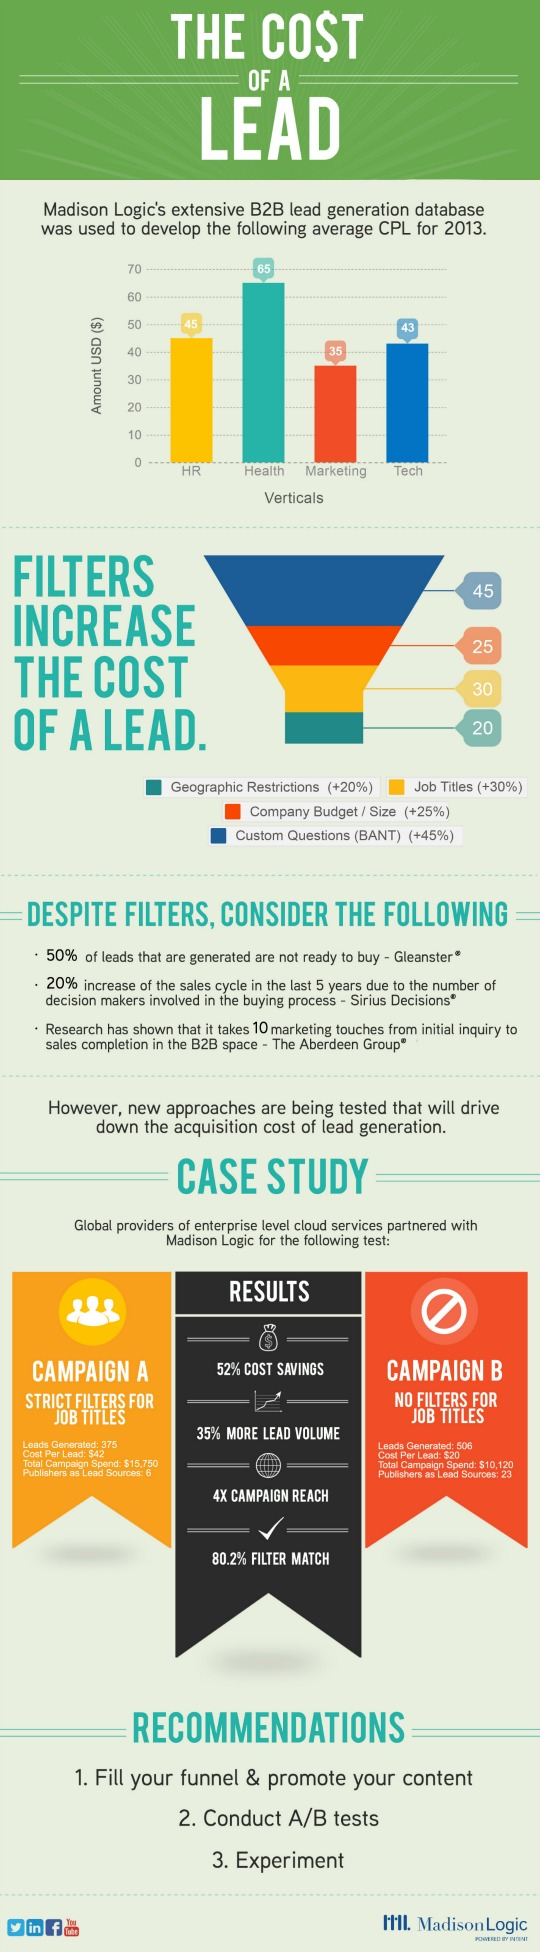 B2B Lead Generation Cost Infographic